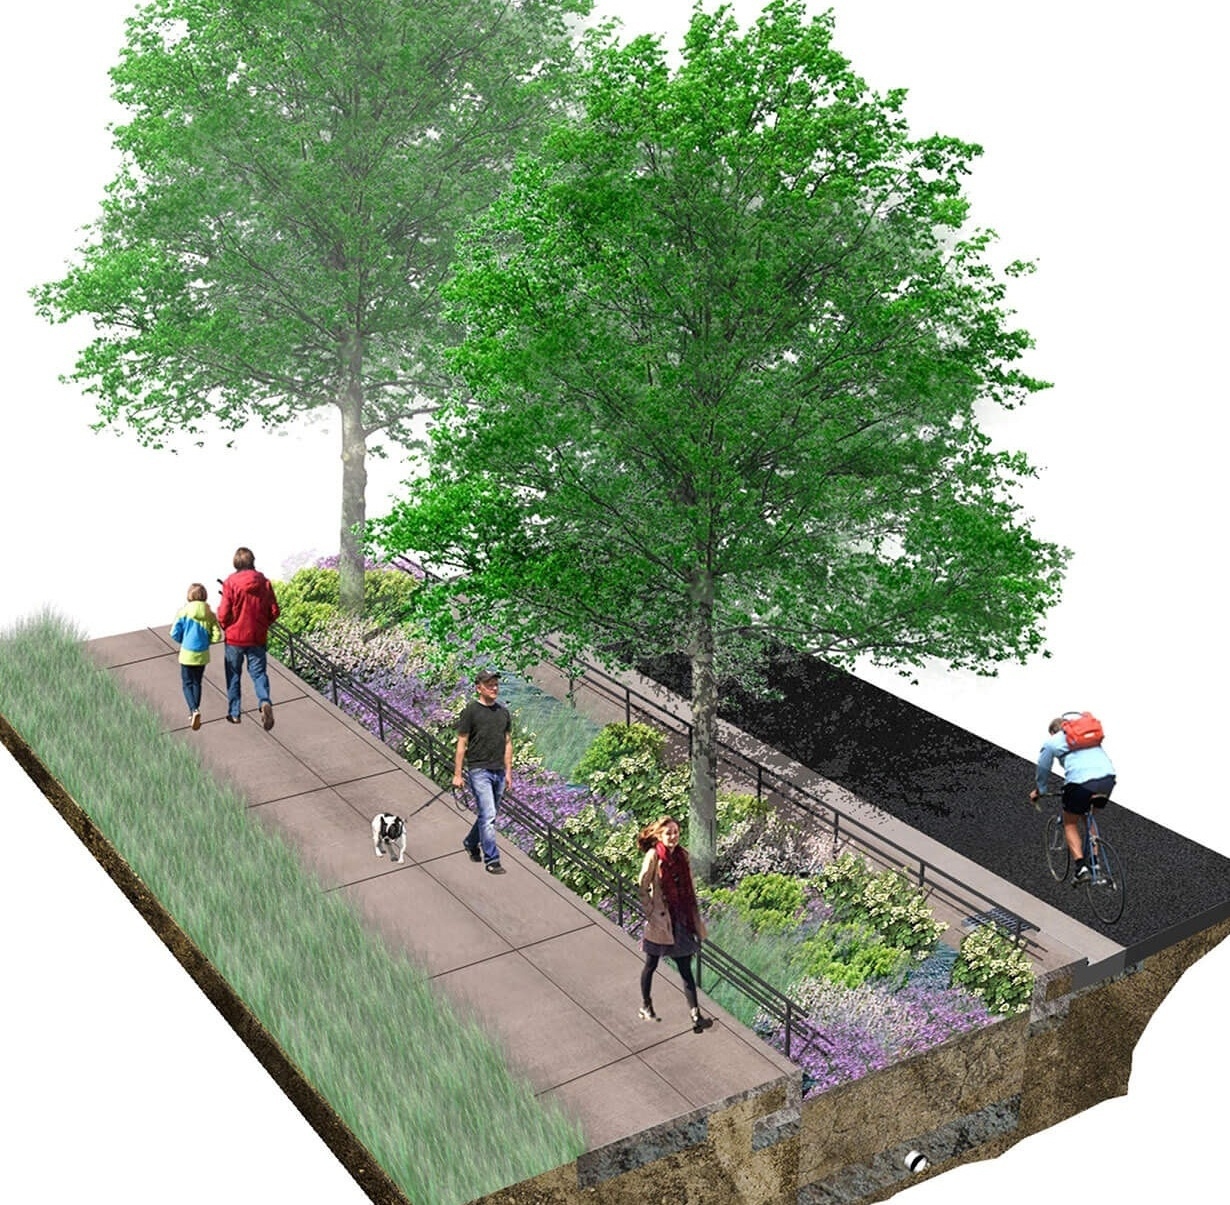 LeDroit Park Green Infrastructure